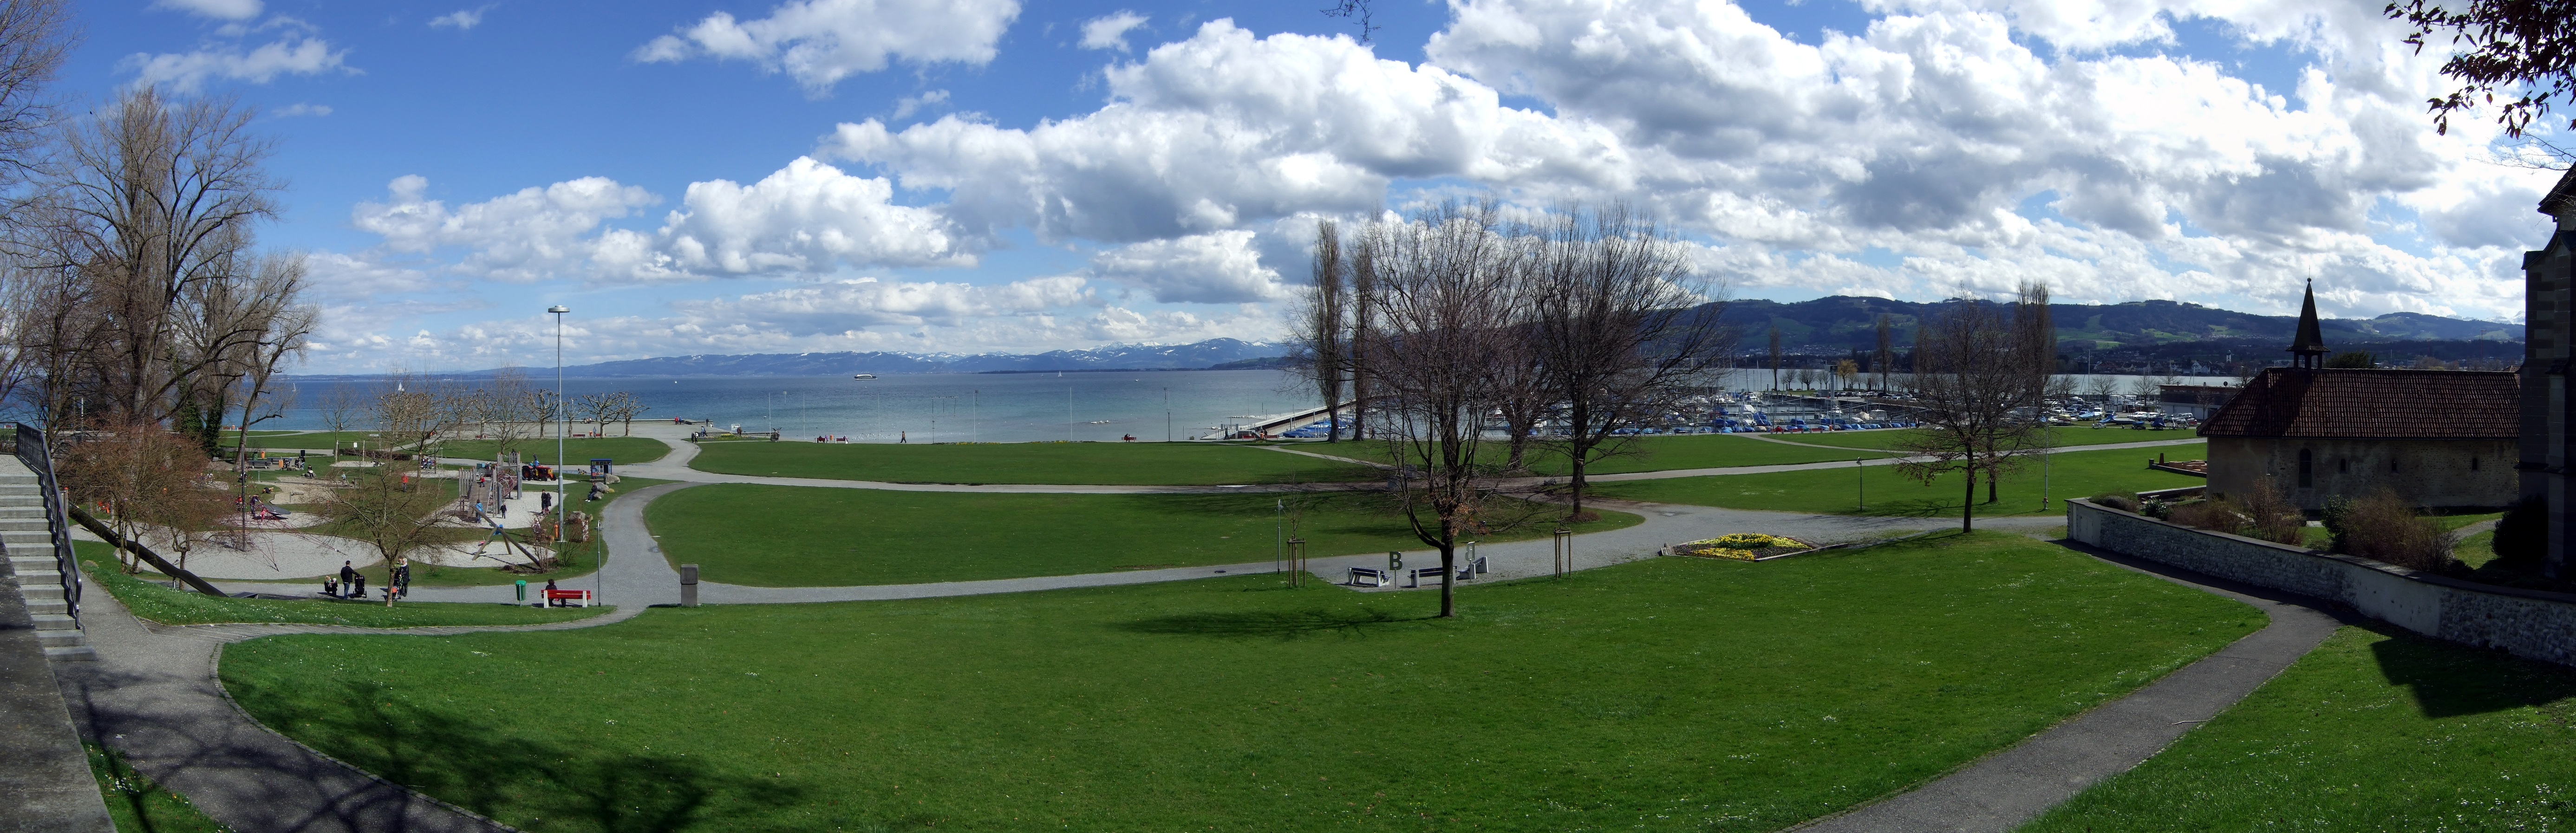 20130413-bodensee-arbon-panorama